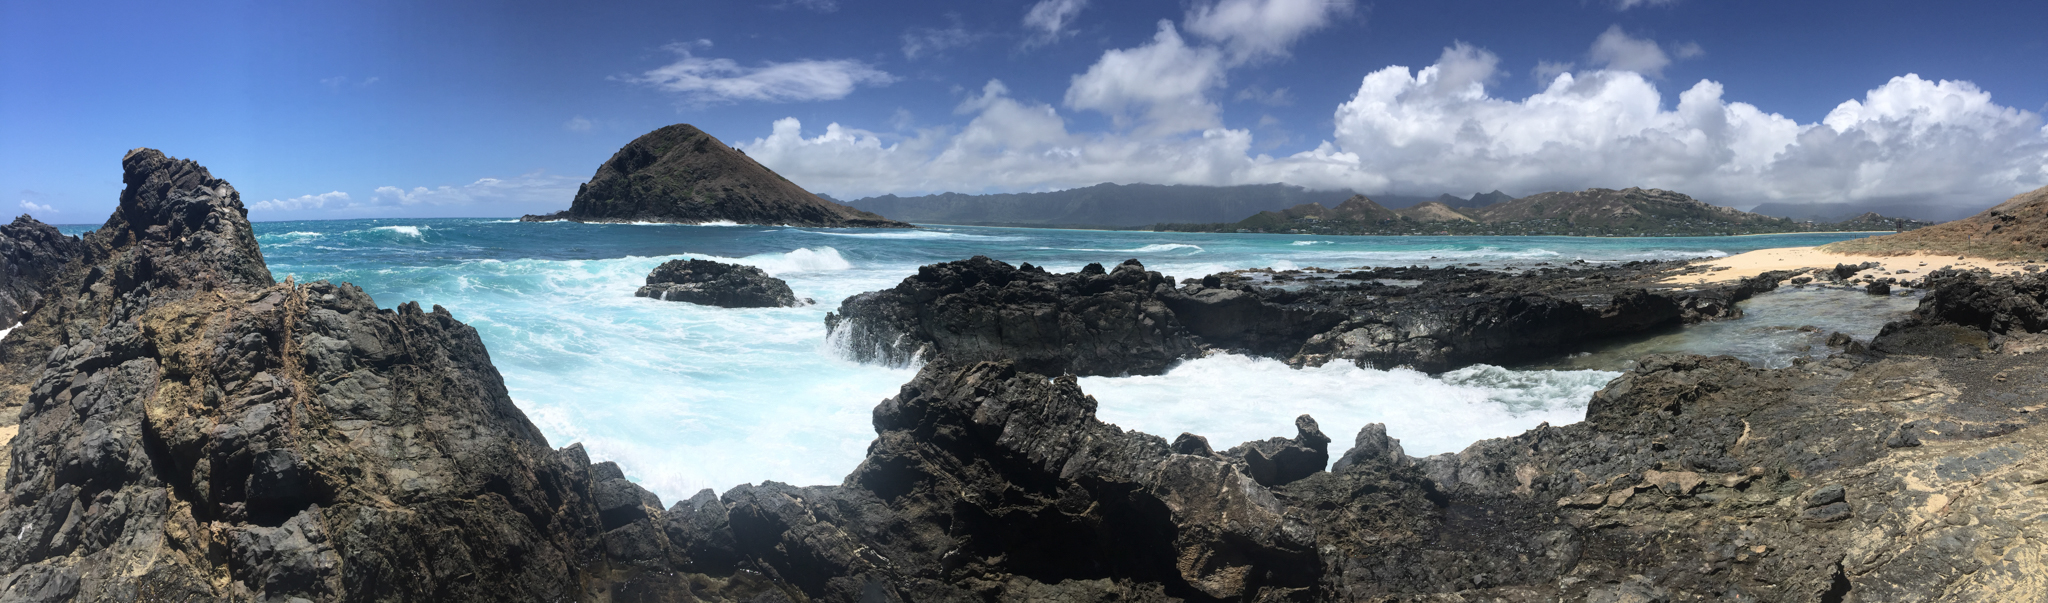 Moku Nui is a nature preserve, so the tiny island is home only to 'Iwa and Sooty Terns--no humans.